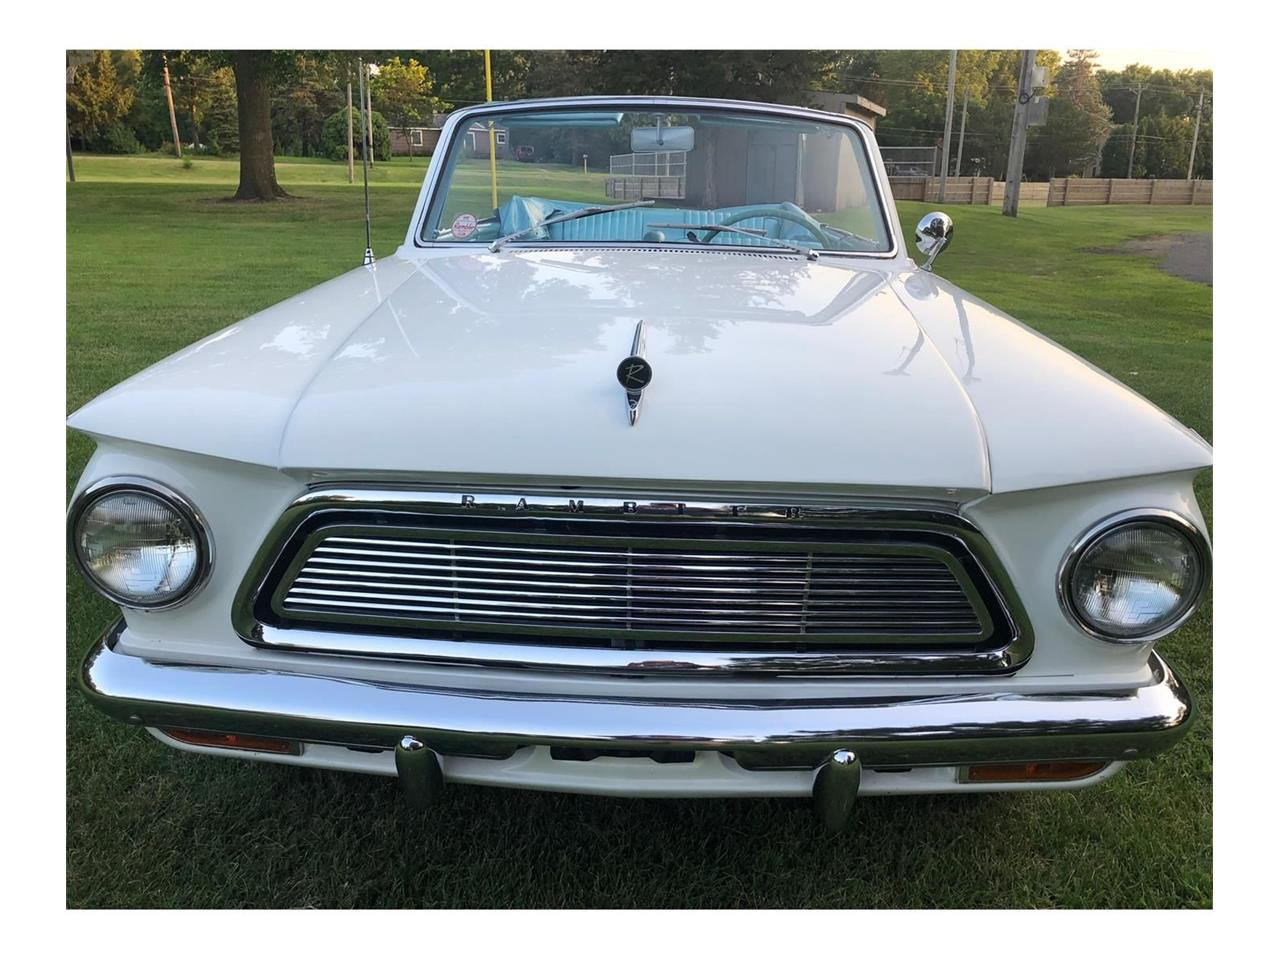 Large Picture of '62 Rambler American located in Minnesota Offered by Classic Rides and Rods - PYWM